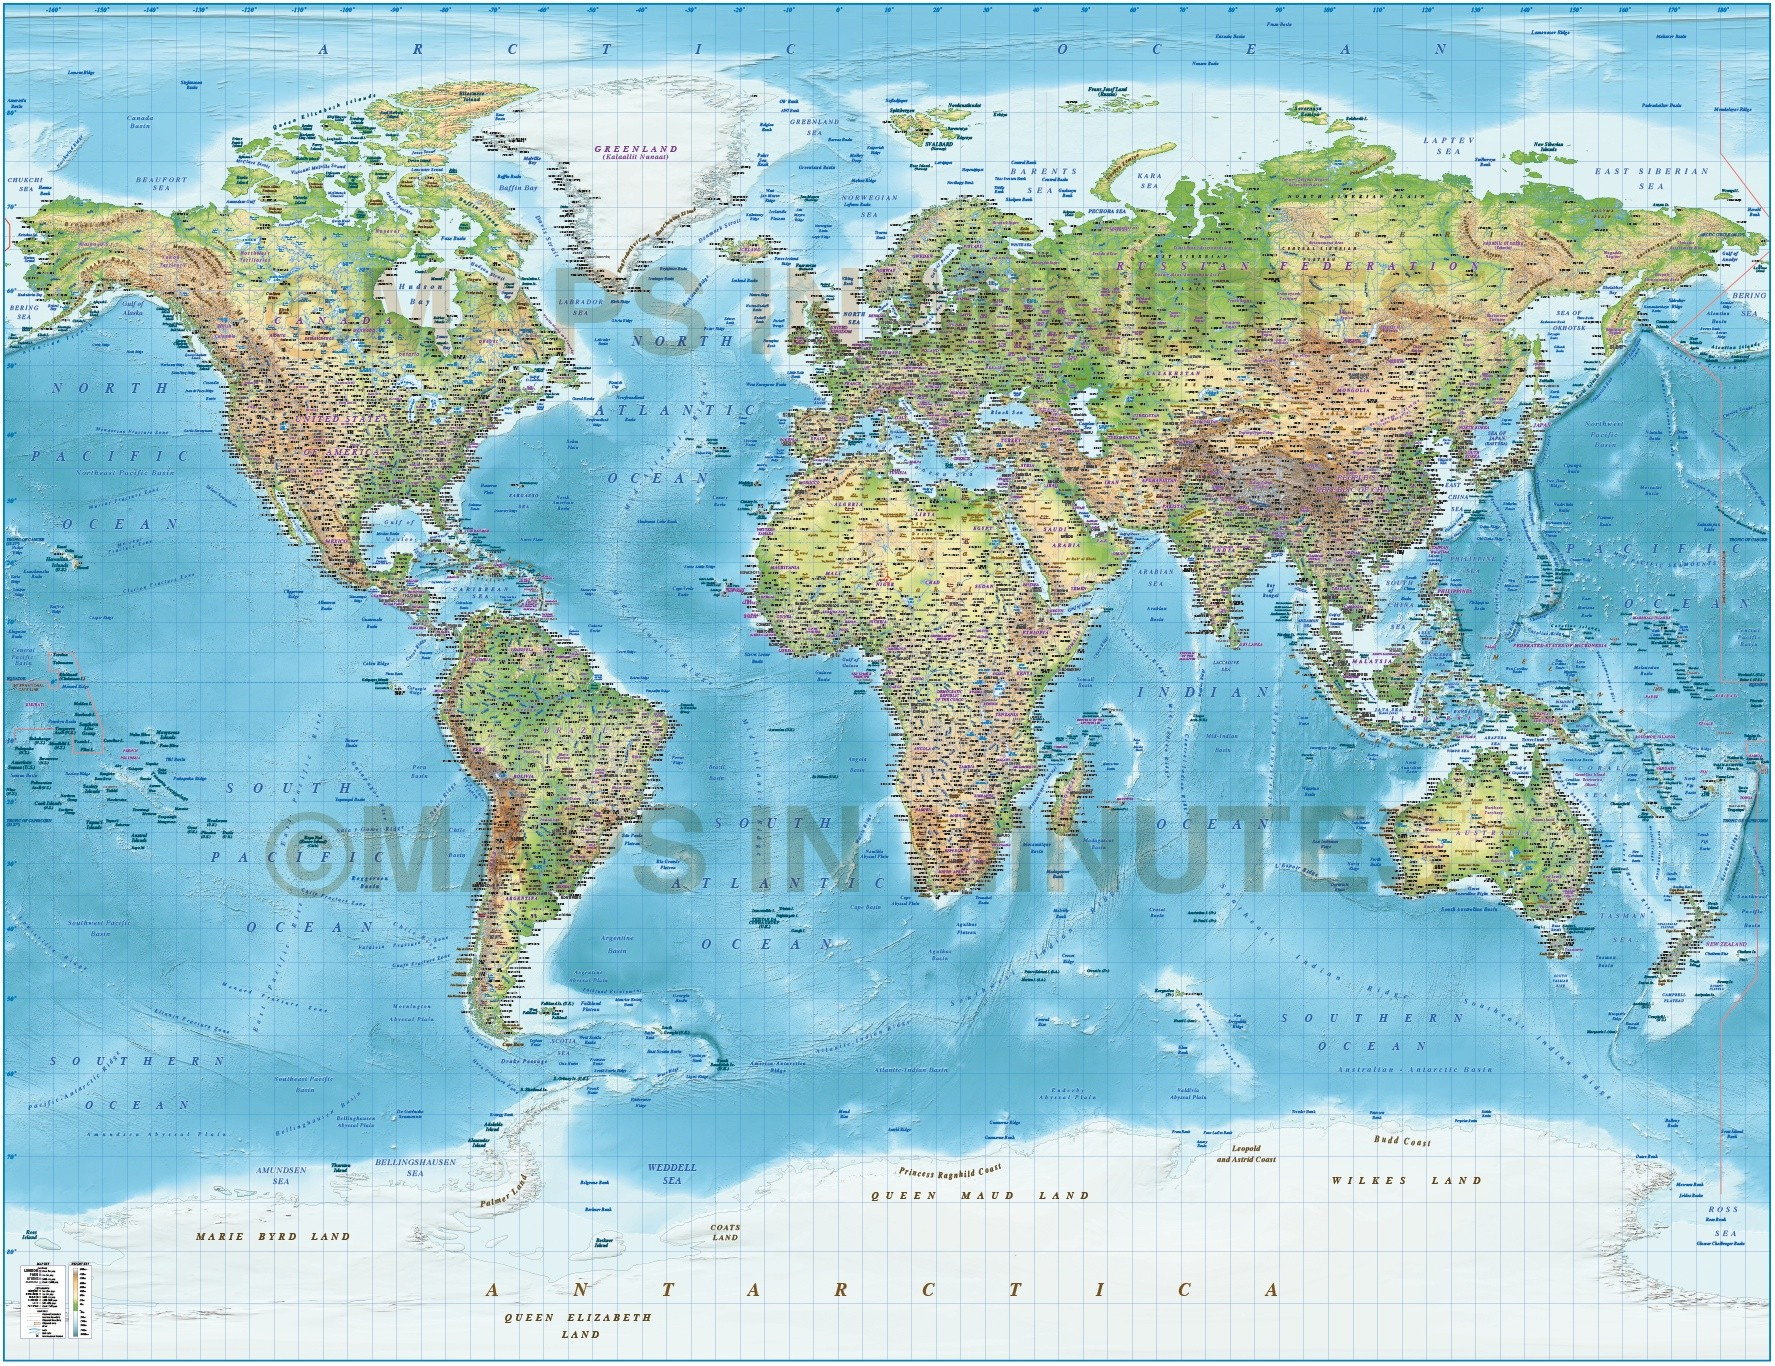 Digital Vector Political World Map With Relief Terrain For Land And